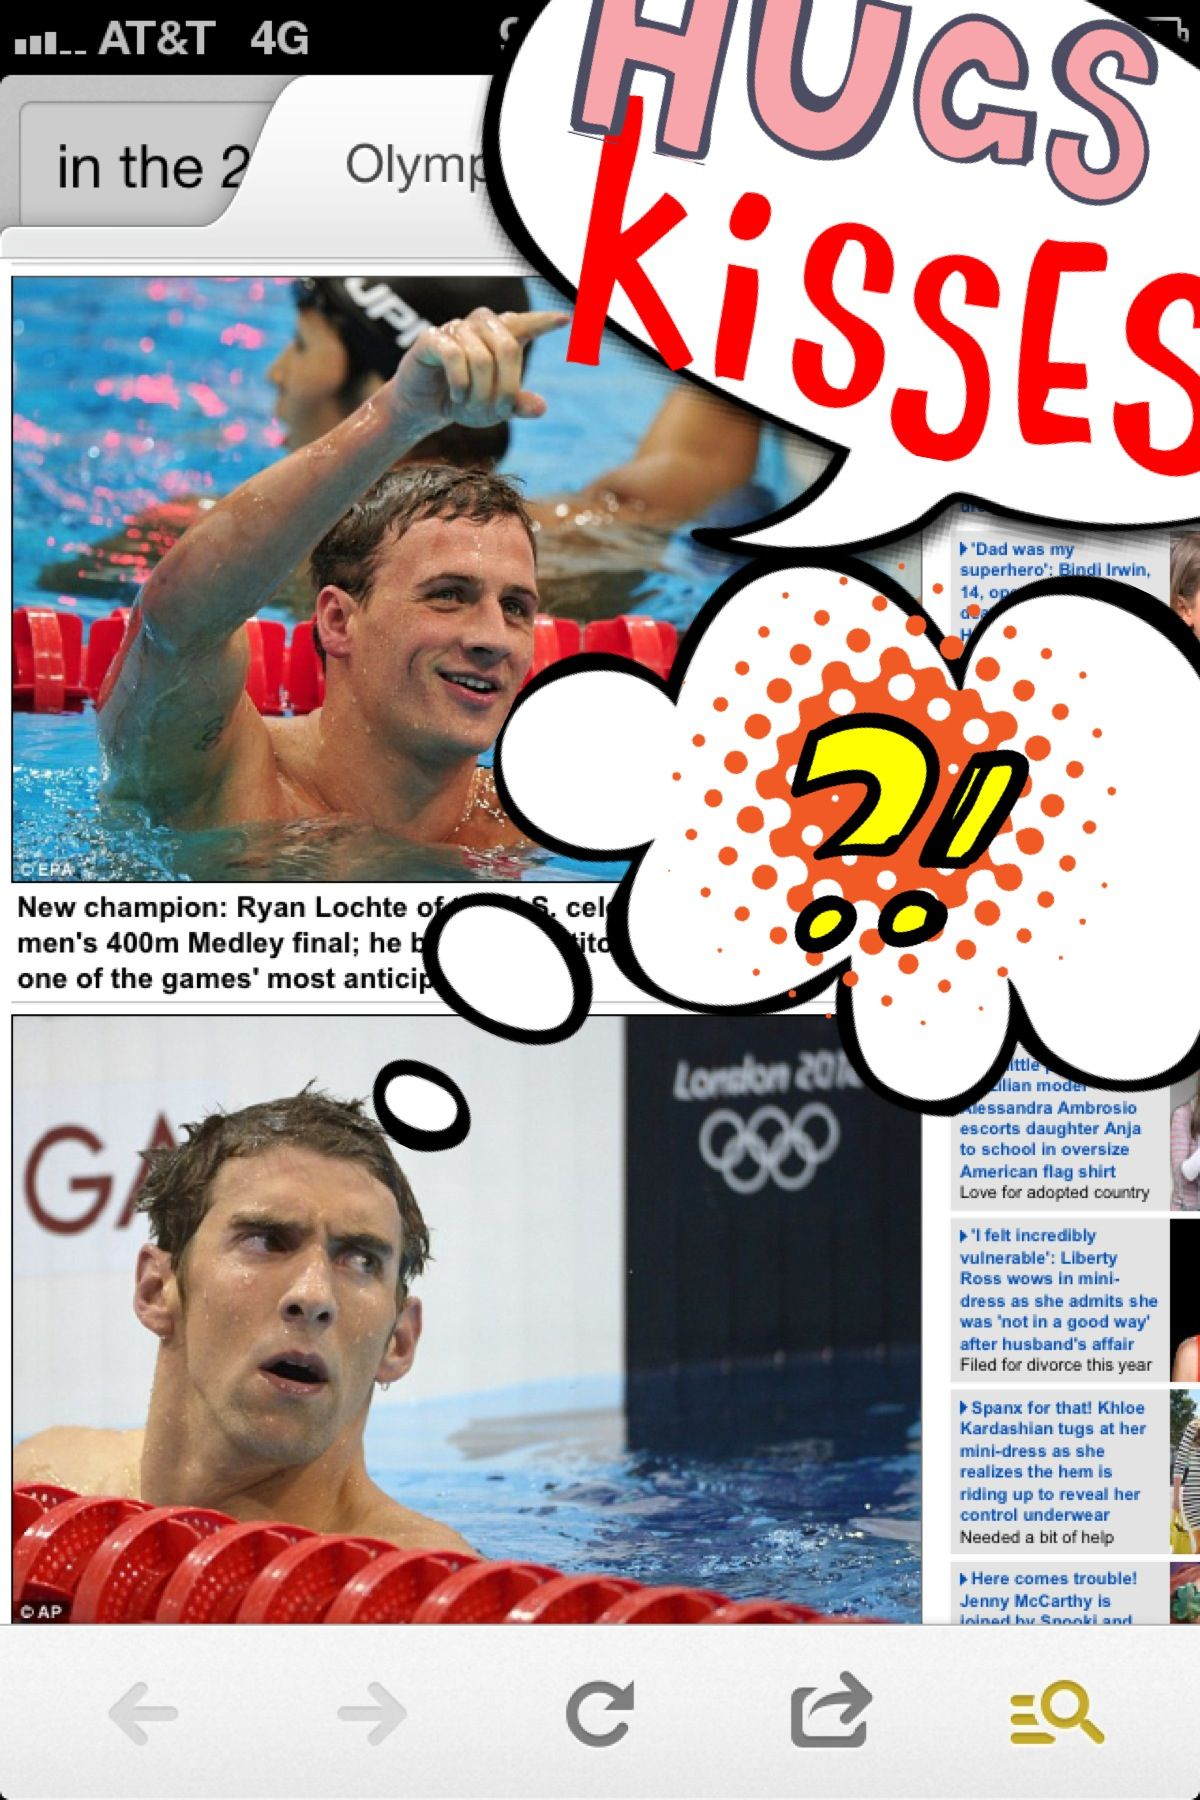 Cute and cuter! They are both awesome! I admire them both as a swimmer ❤❤❤